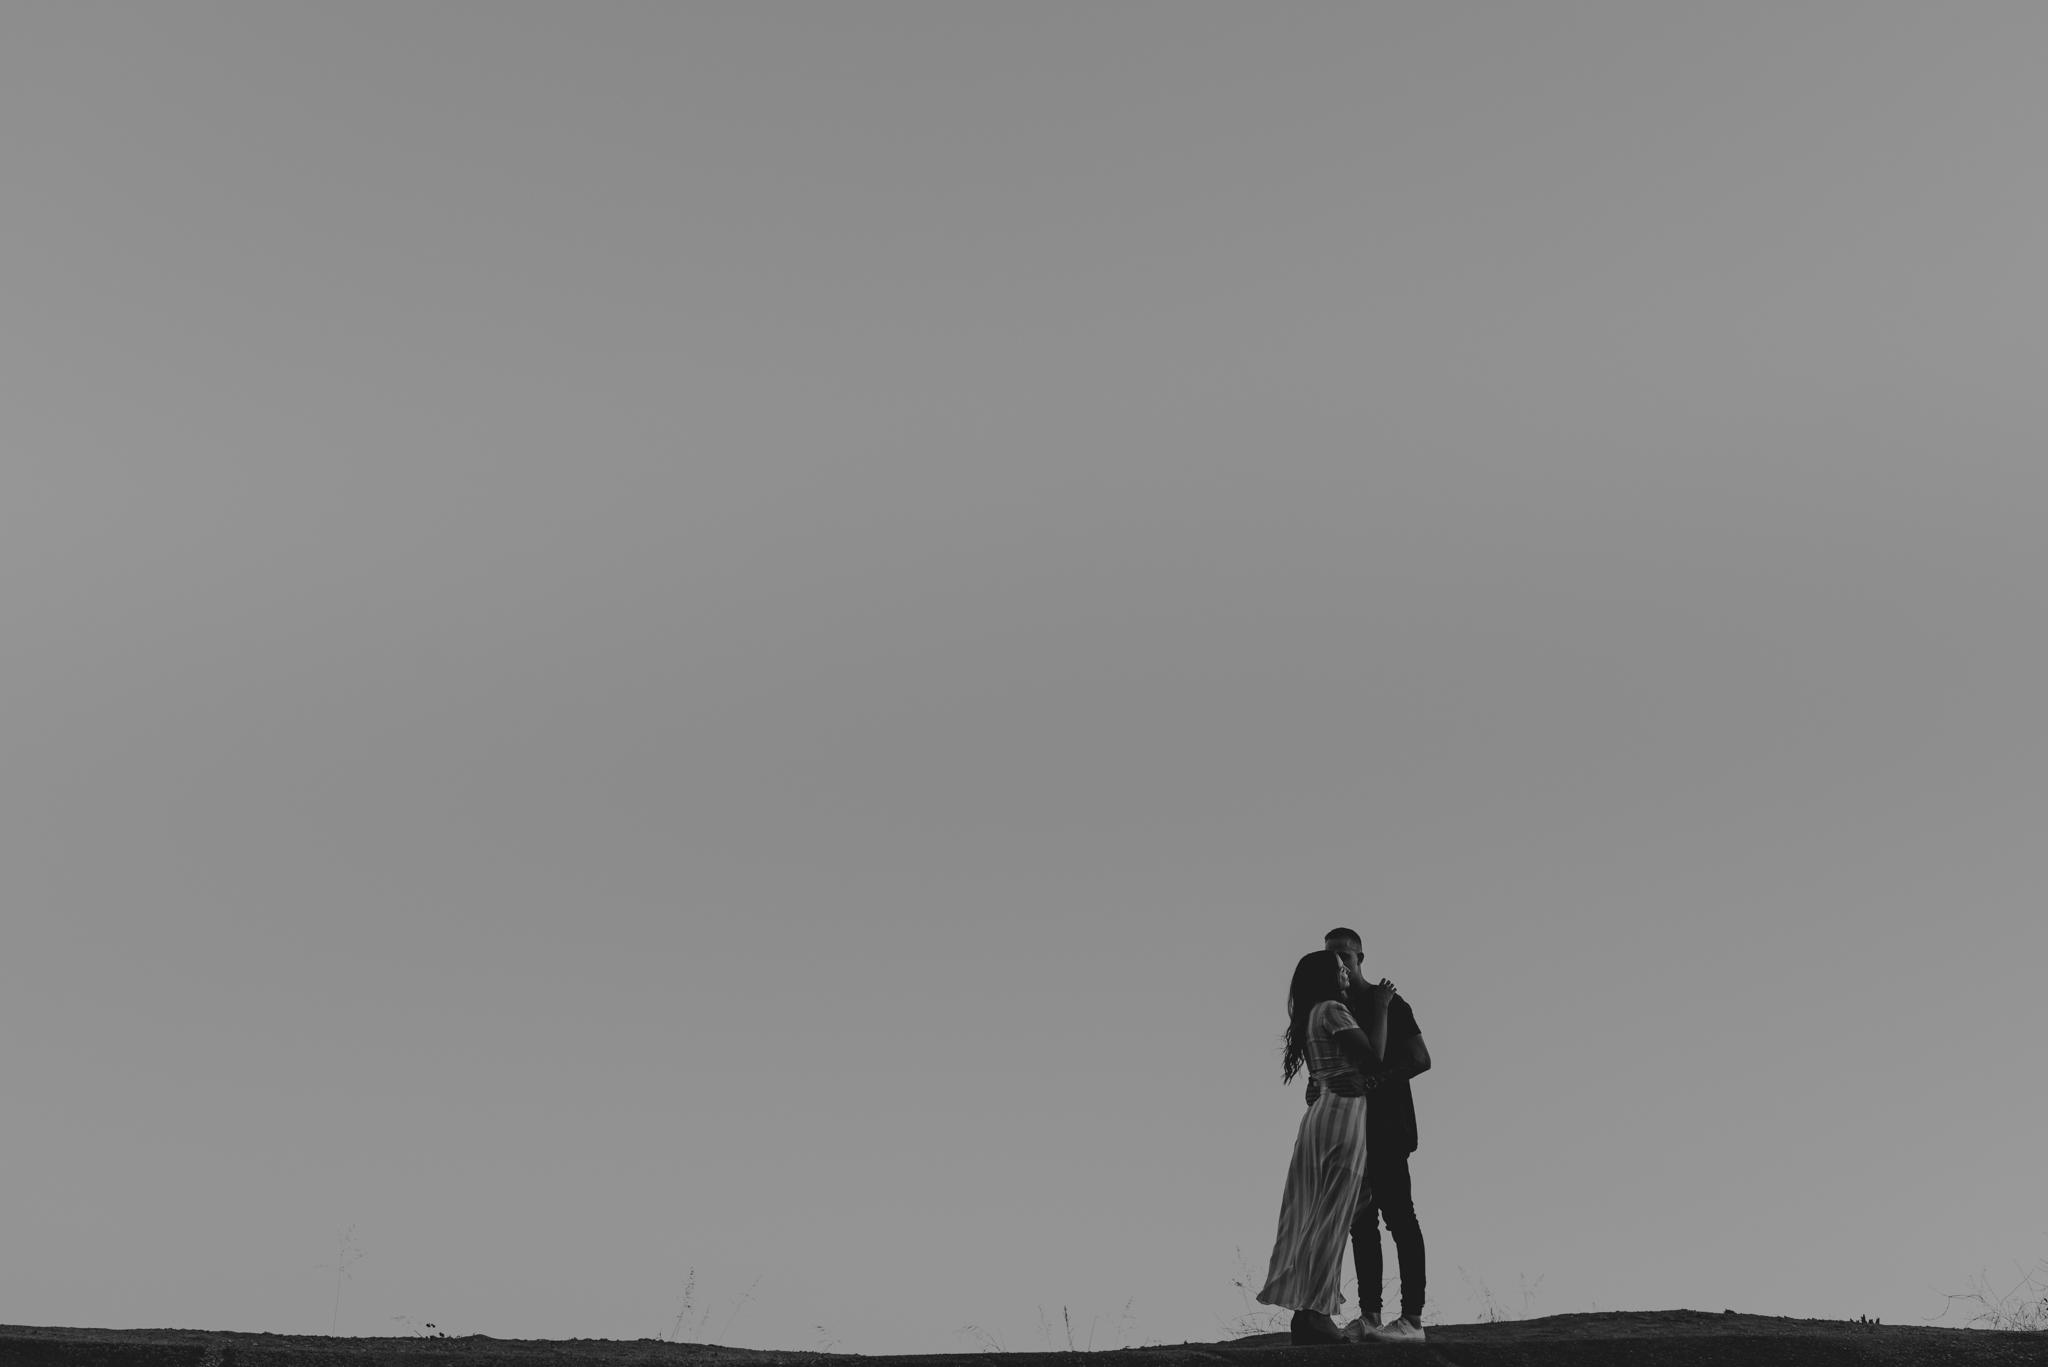 Isaiah + Taylor Photography - Los Angeles Forest Engagement Session - Laid back wedding photographer-007.jpg